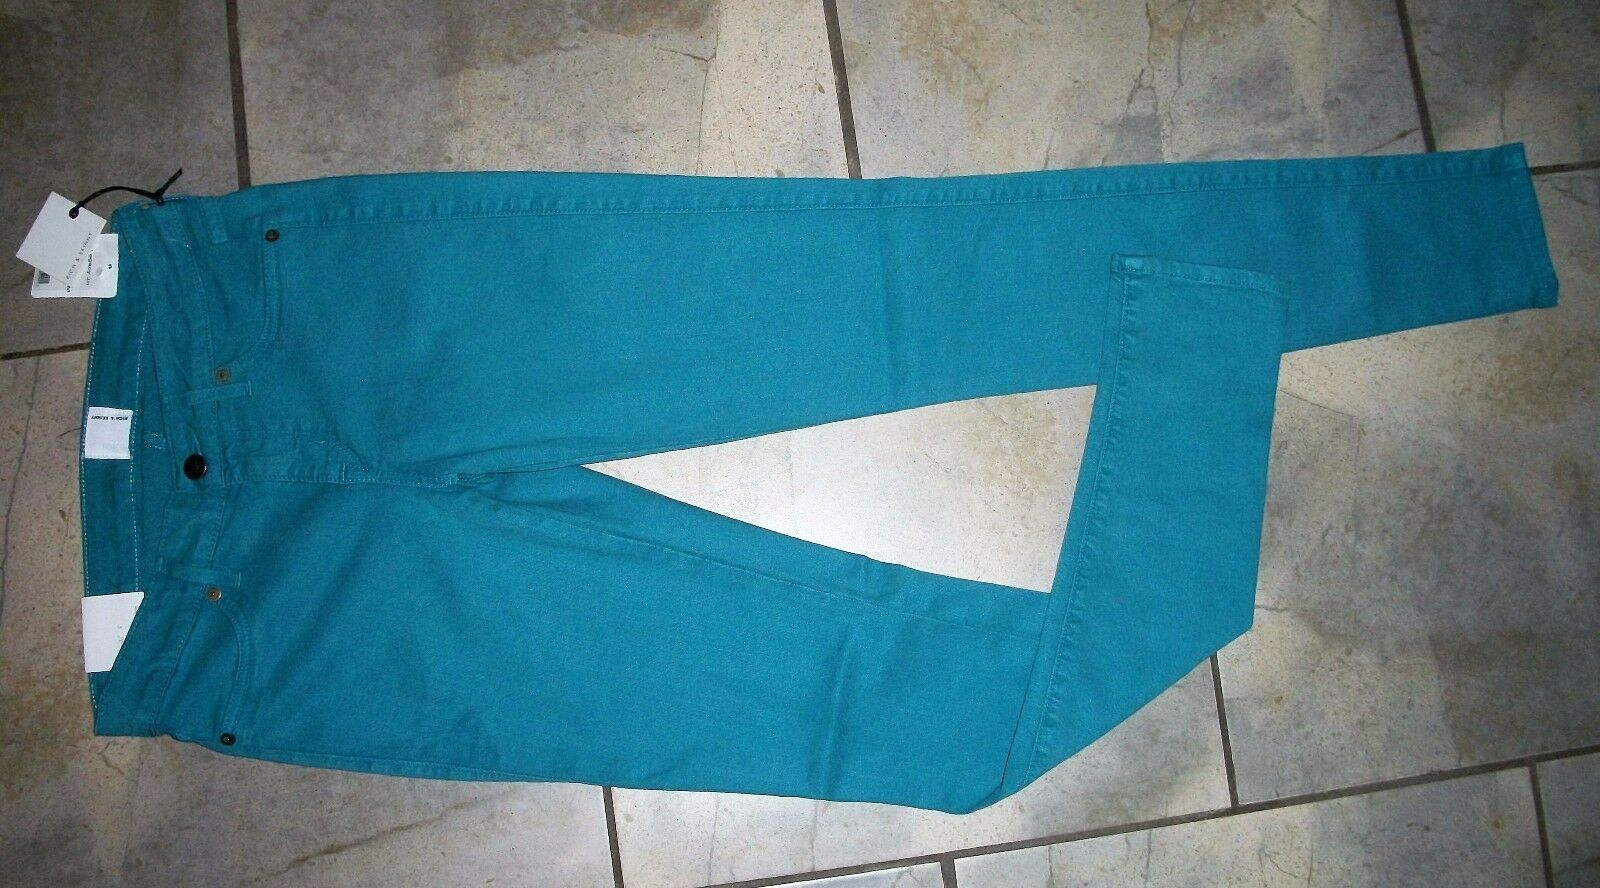 1107  Rich & Skinny Apollo bluee Pants Jeans 26 with Stretch